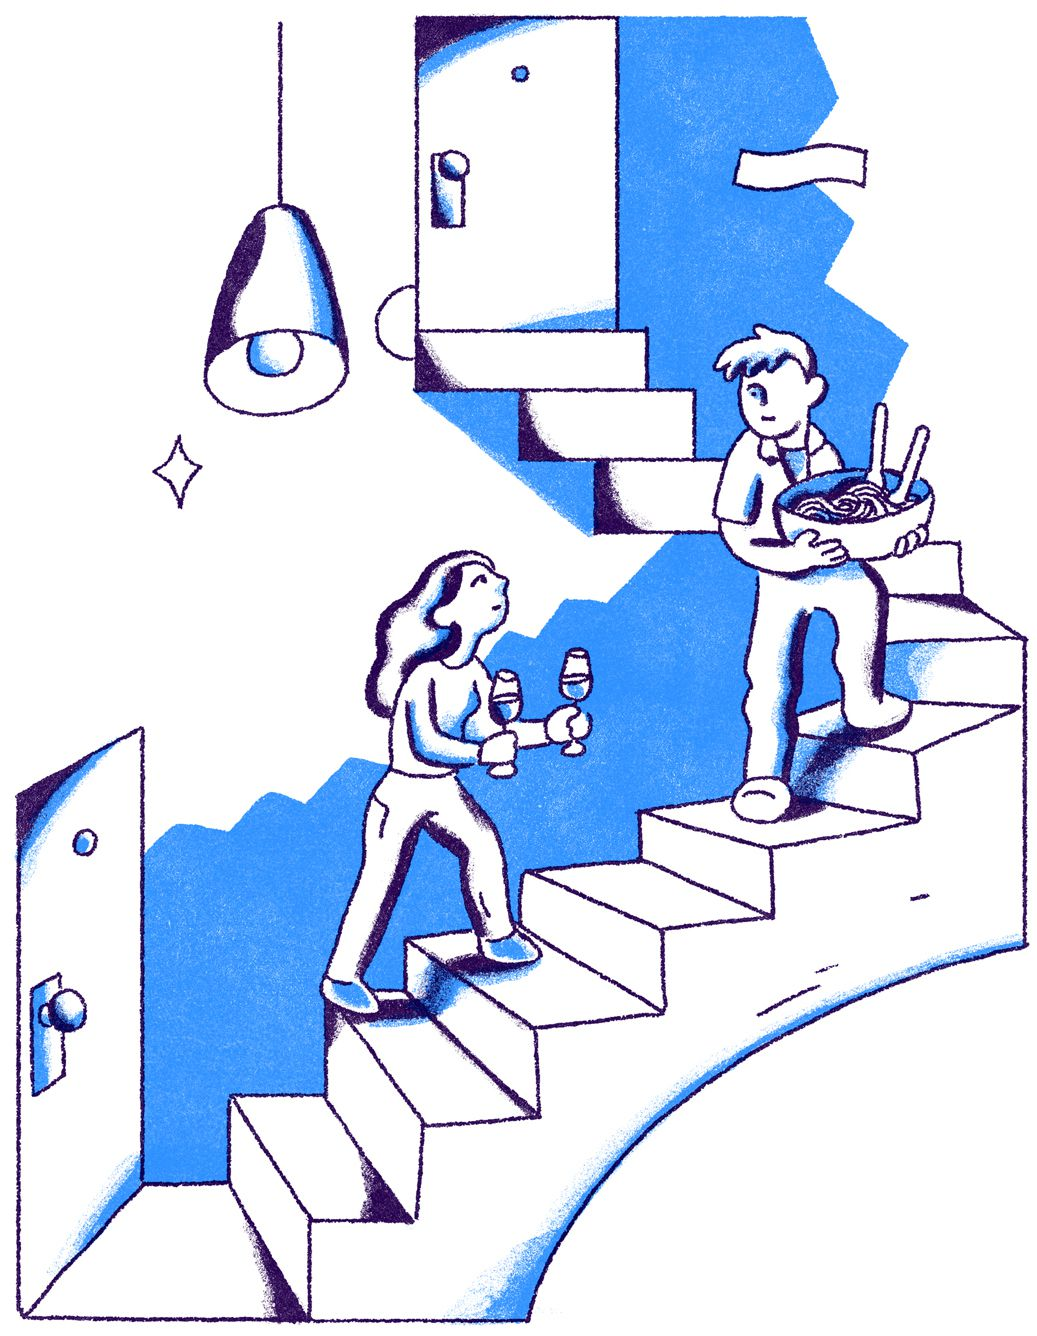 Two figures ascend a staircase, the front figure holding a bowl of pasta, the second figure follows holding two glasses of wine. Illustration.